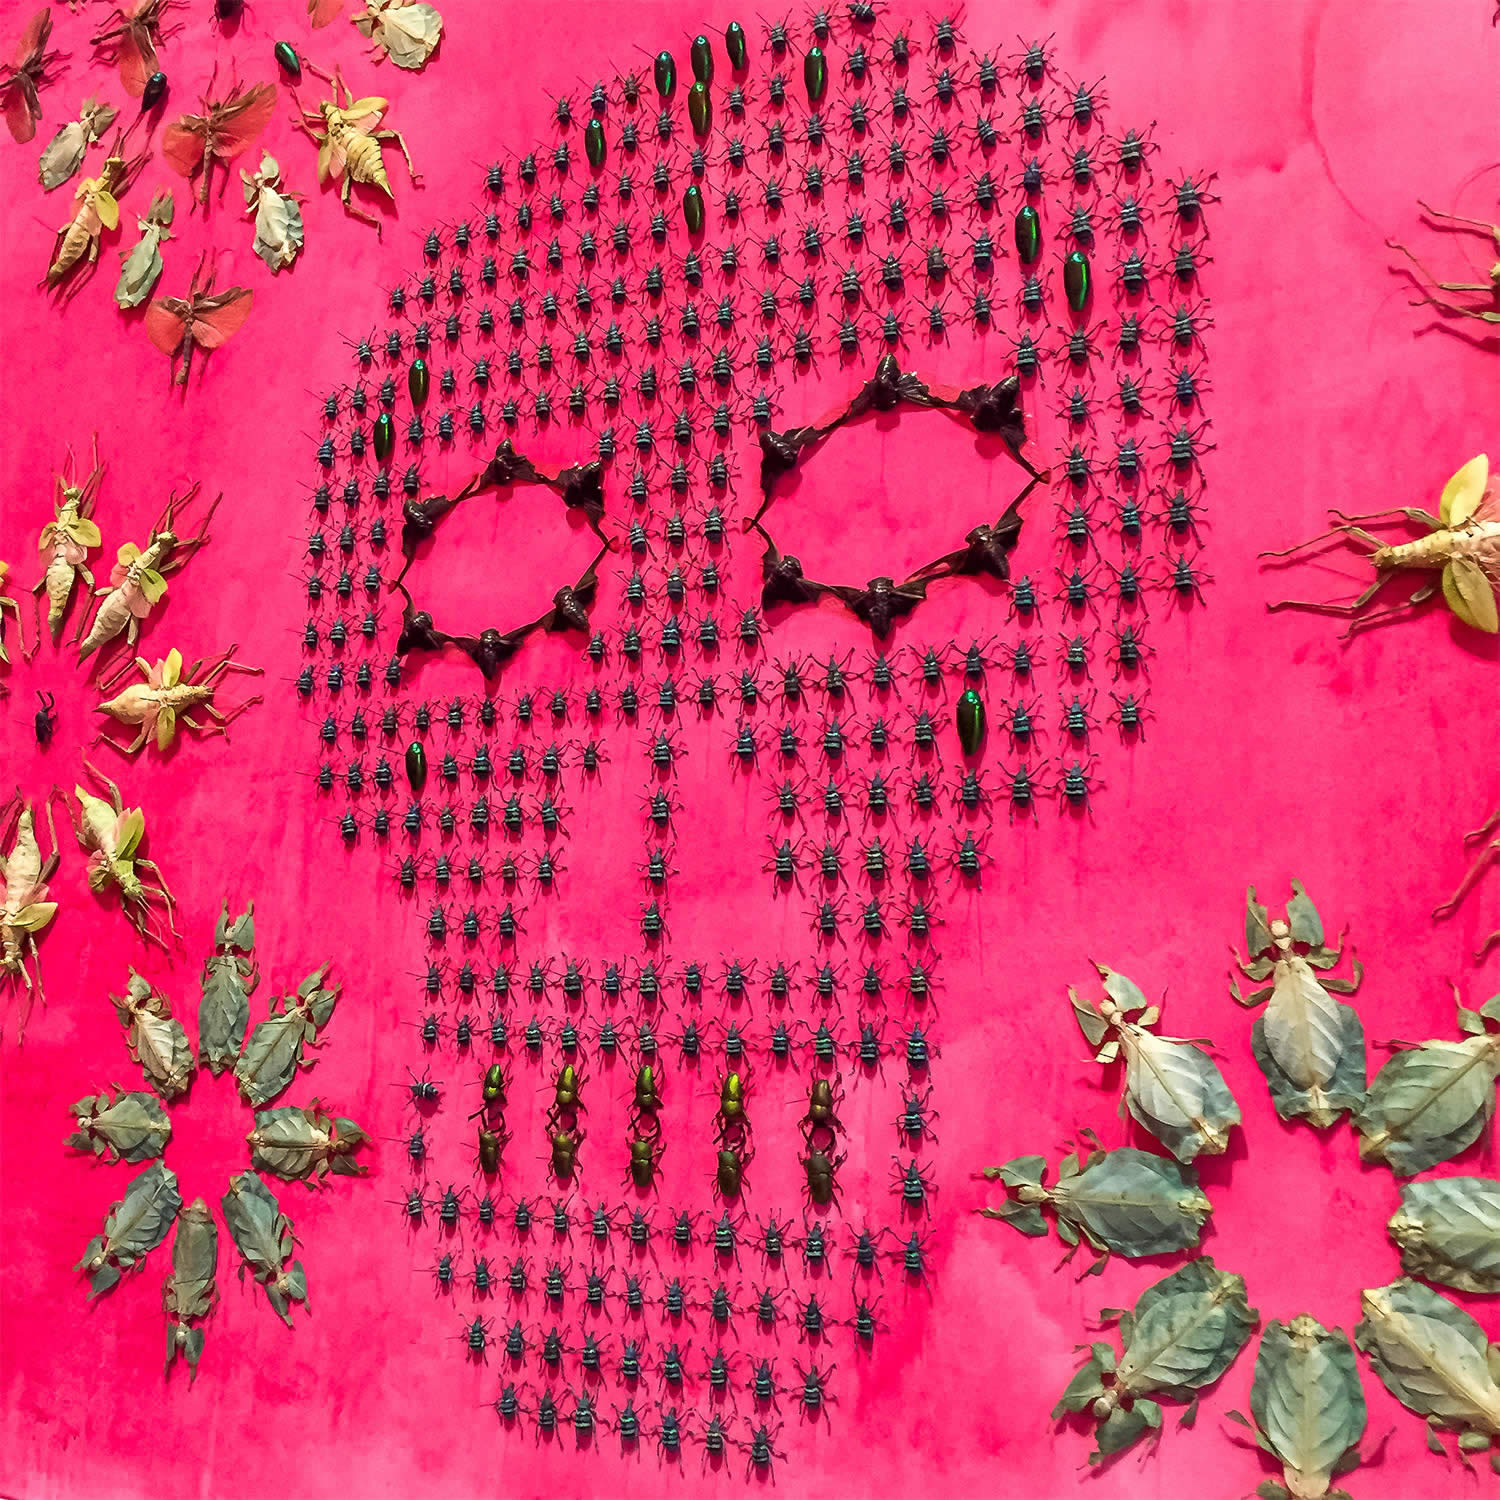 real bugs arranged in the shape of a skull by jennifer angus